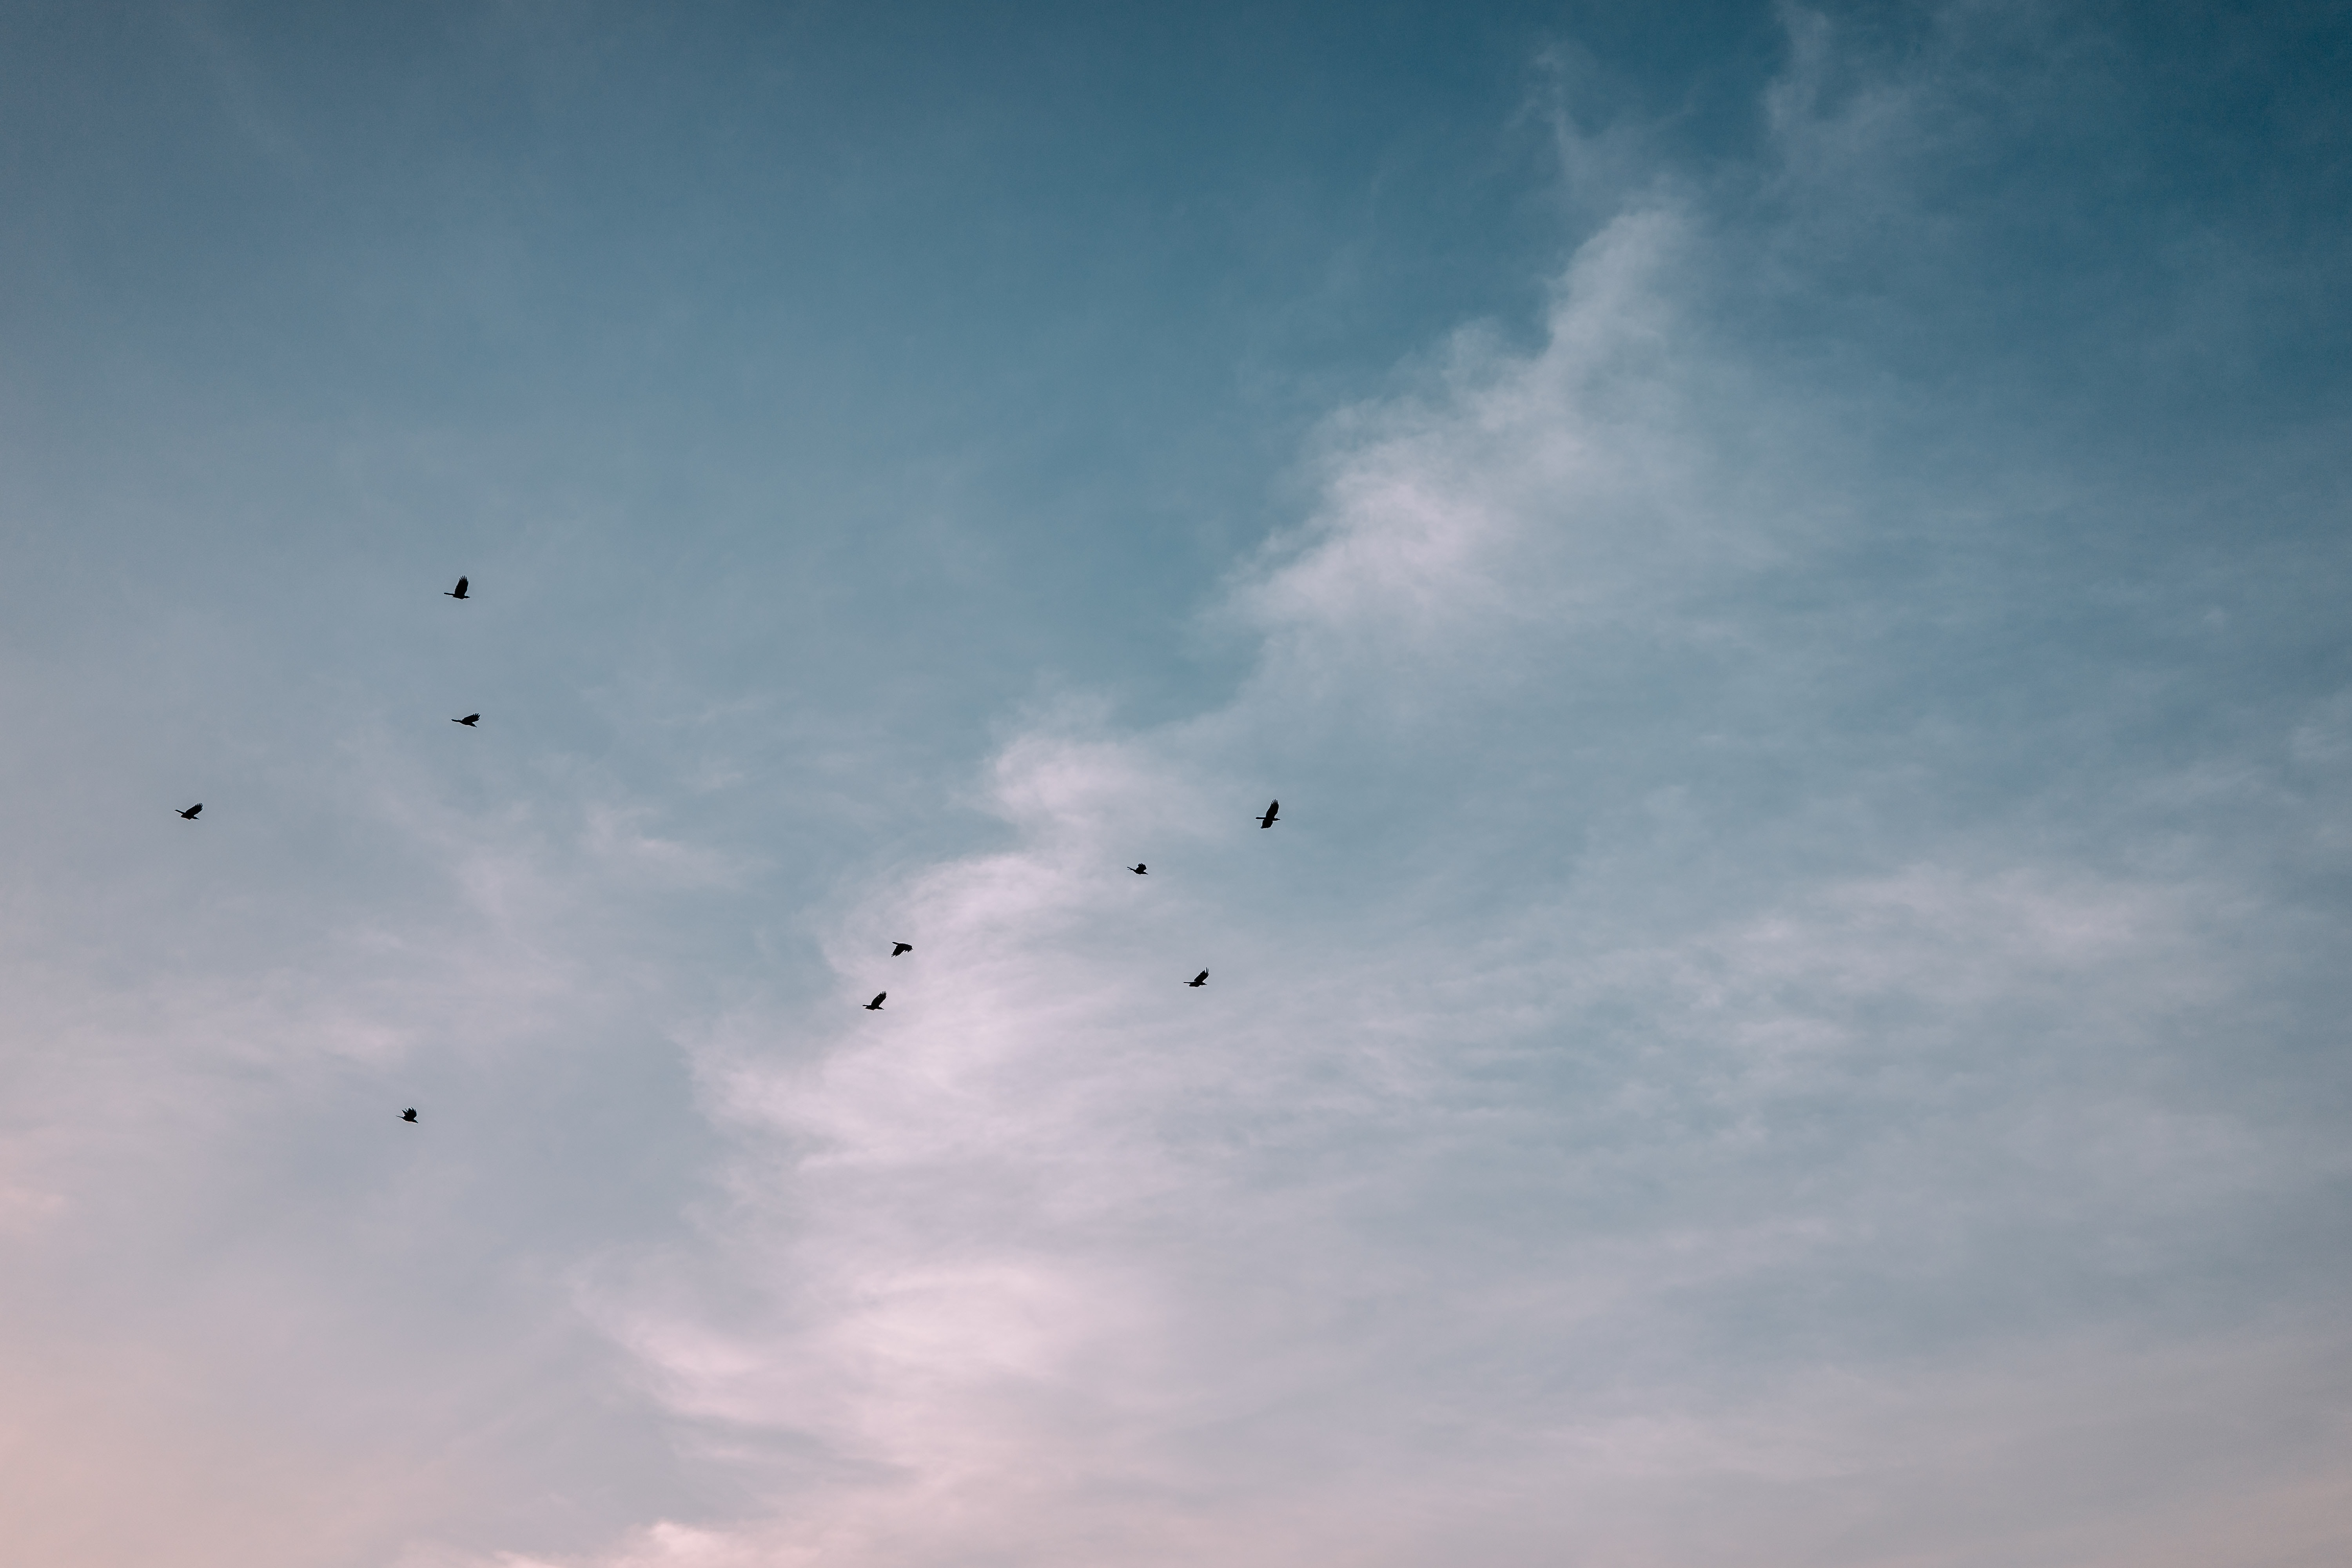 flock of birds flying over the clouds